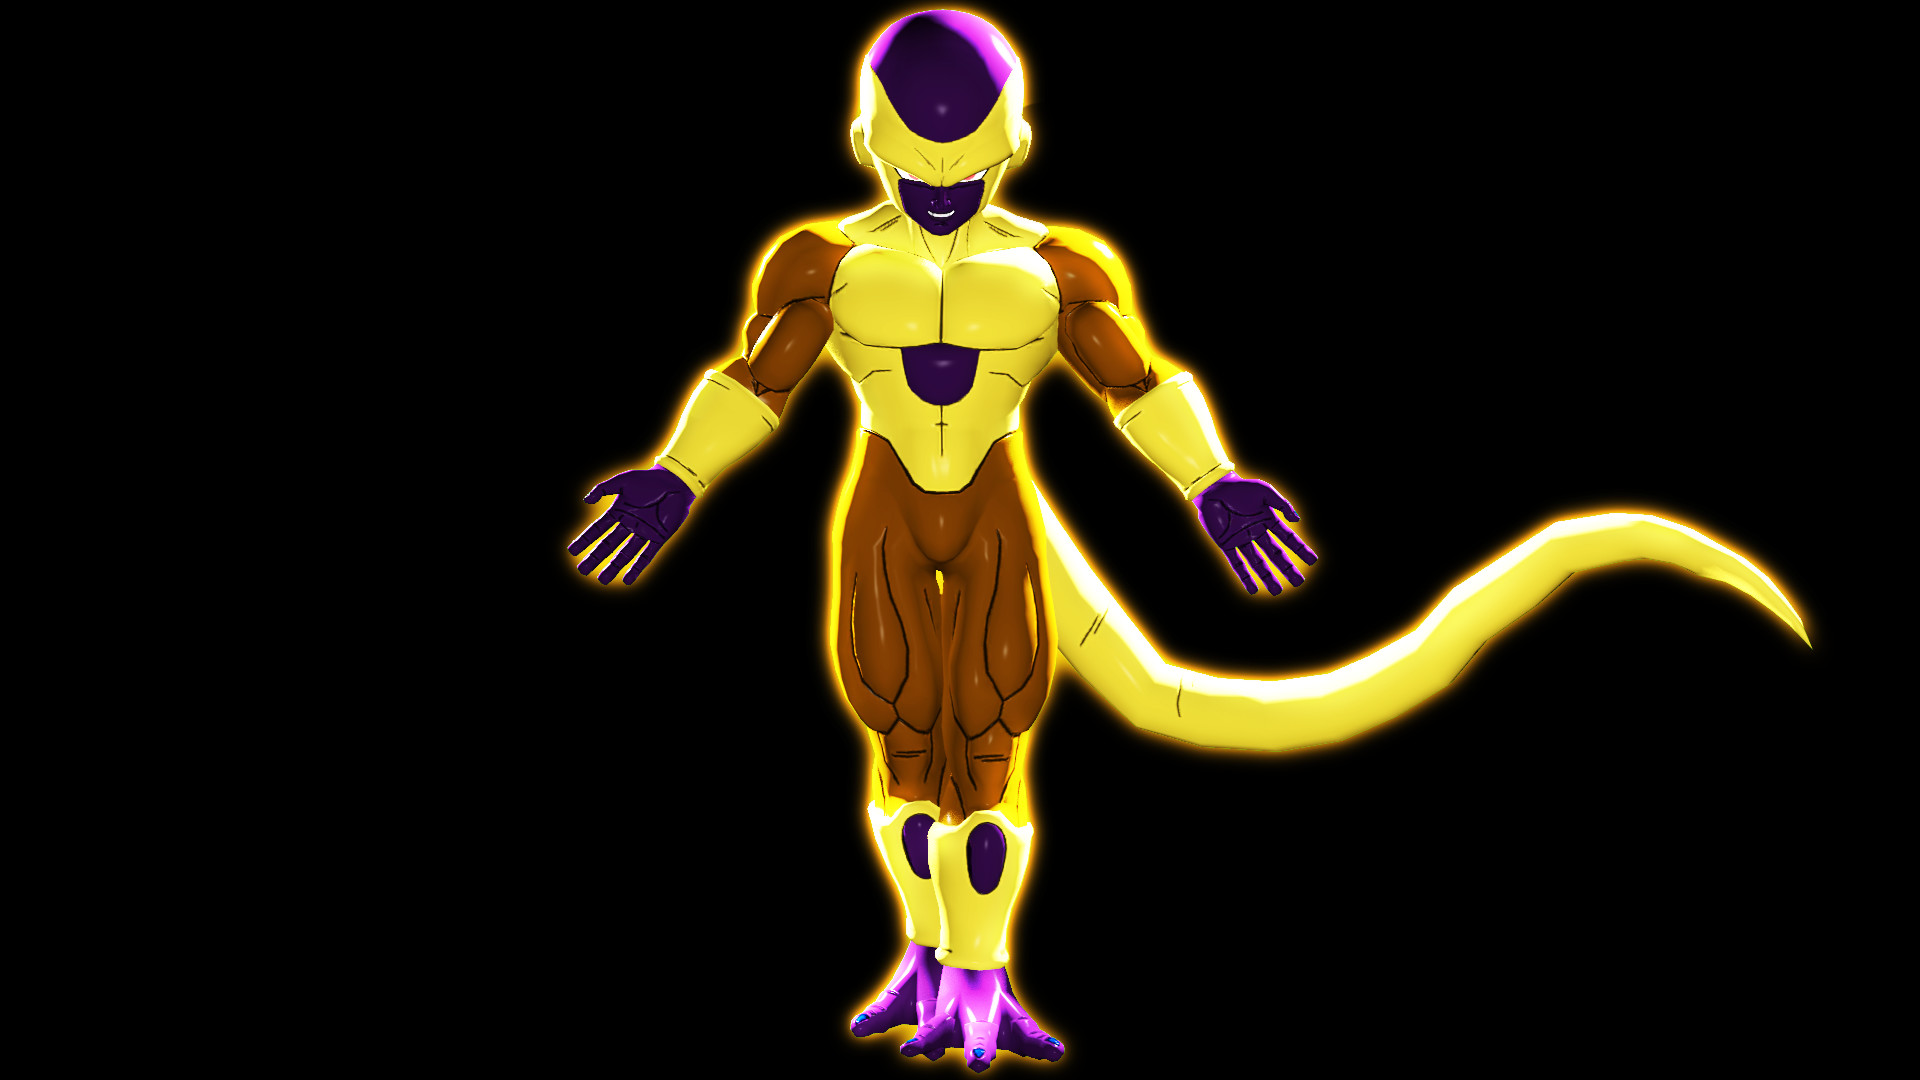 Cheap 3d Wallpaper Golden Frieza Wallpapers 65 Images